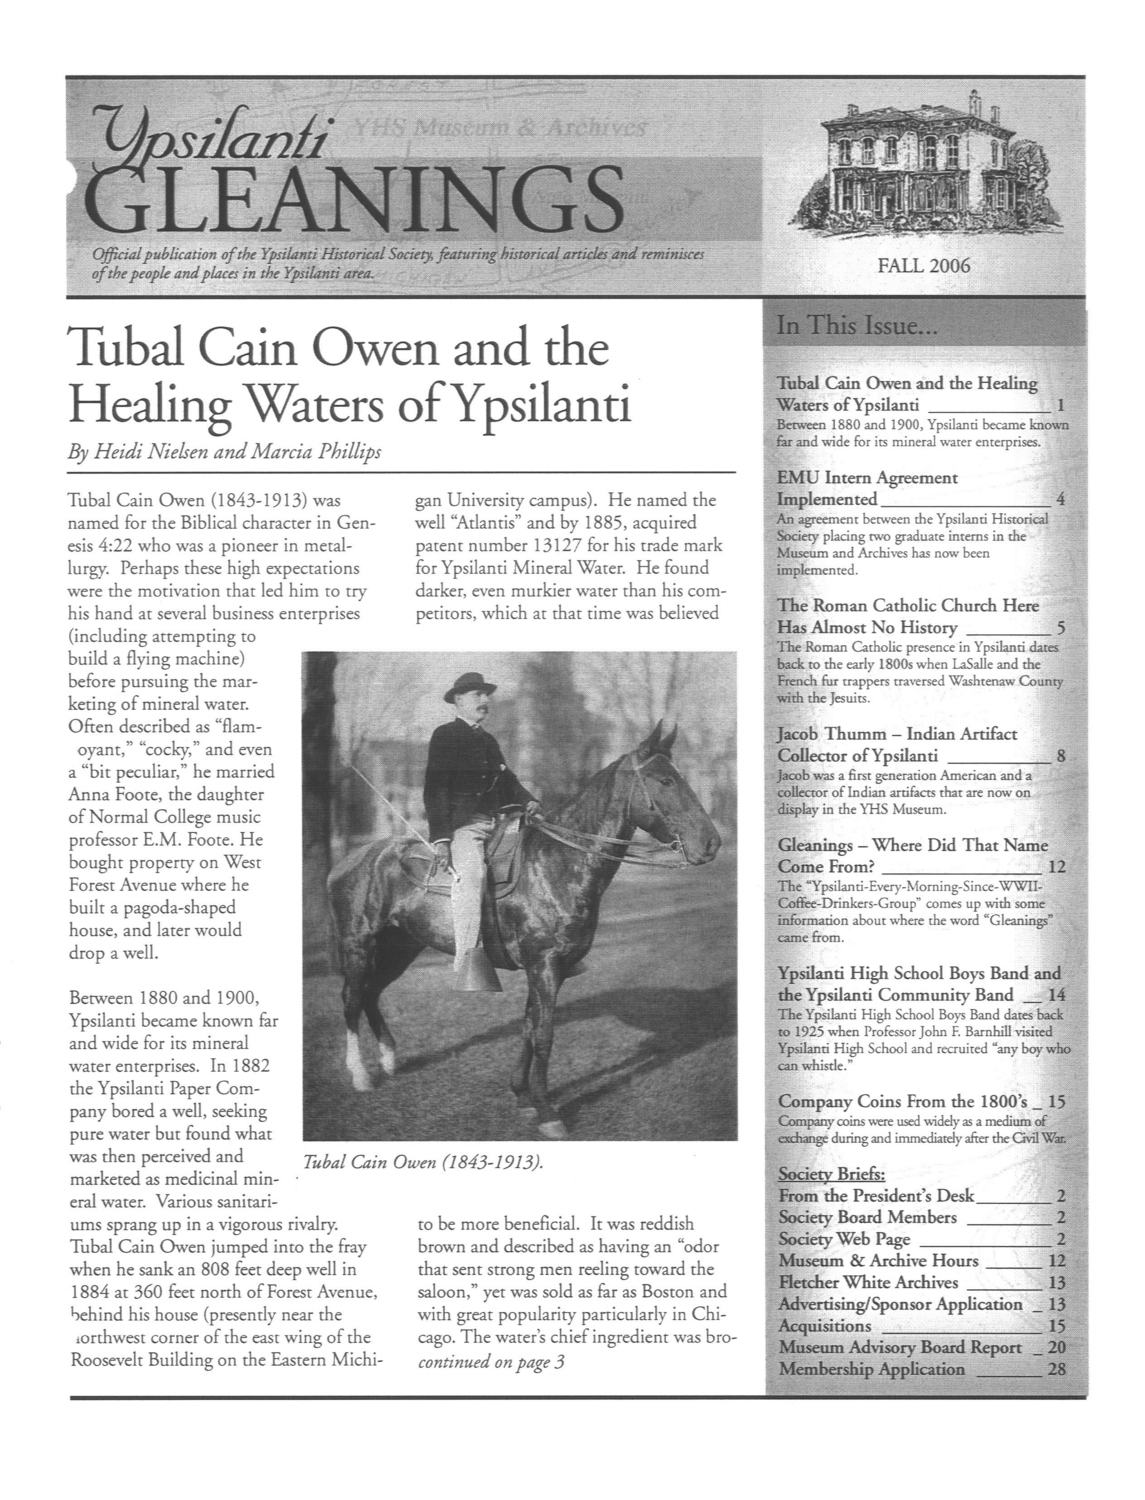 Ypsilanti Gleanings, Fall 2006 image